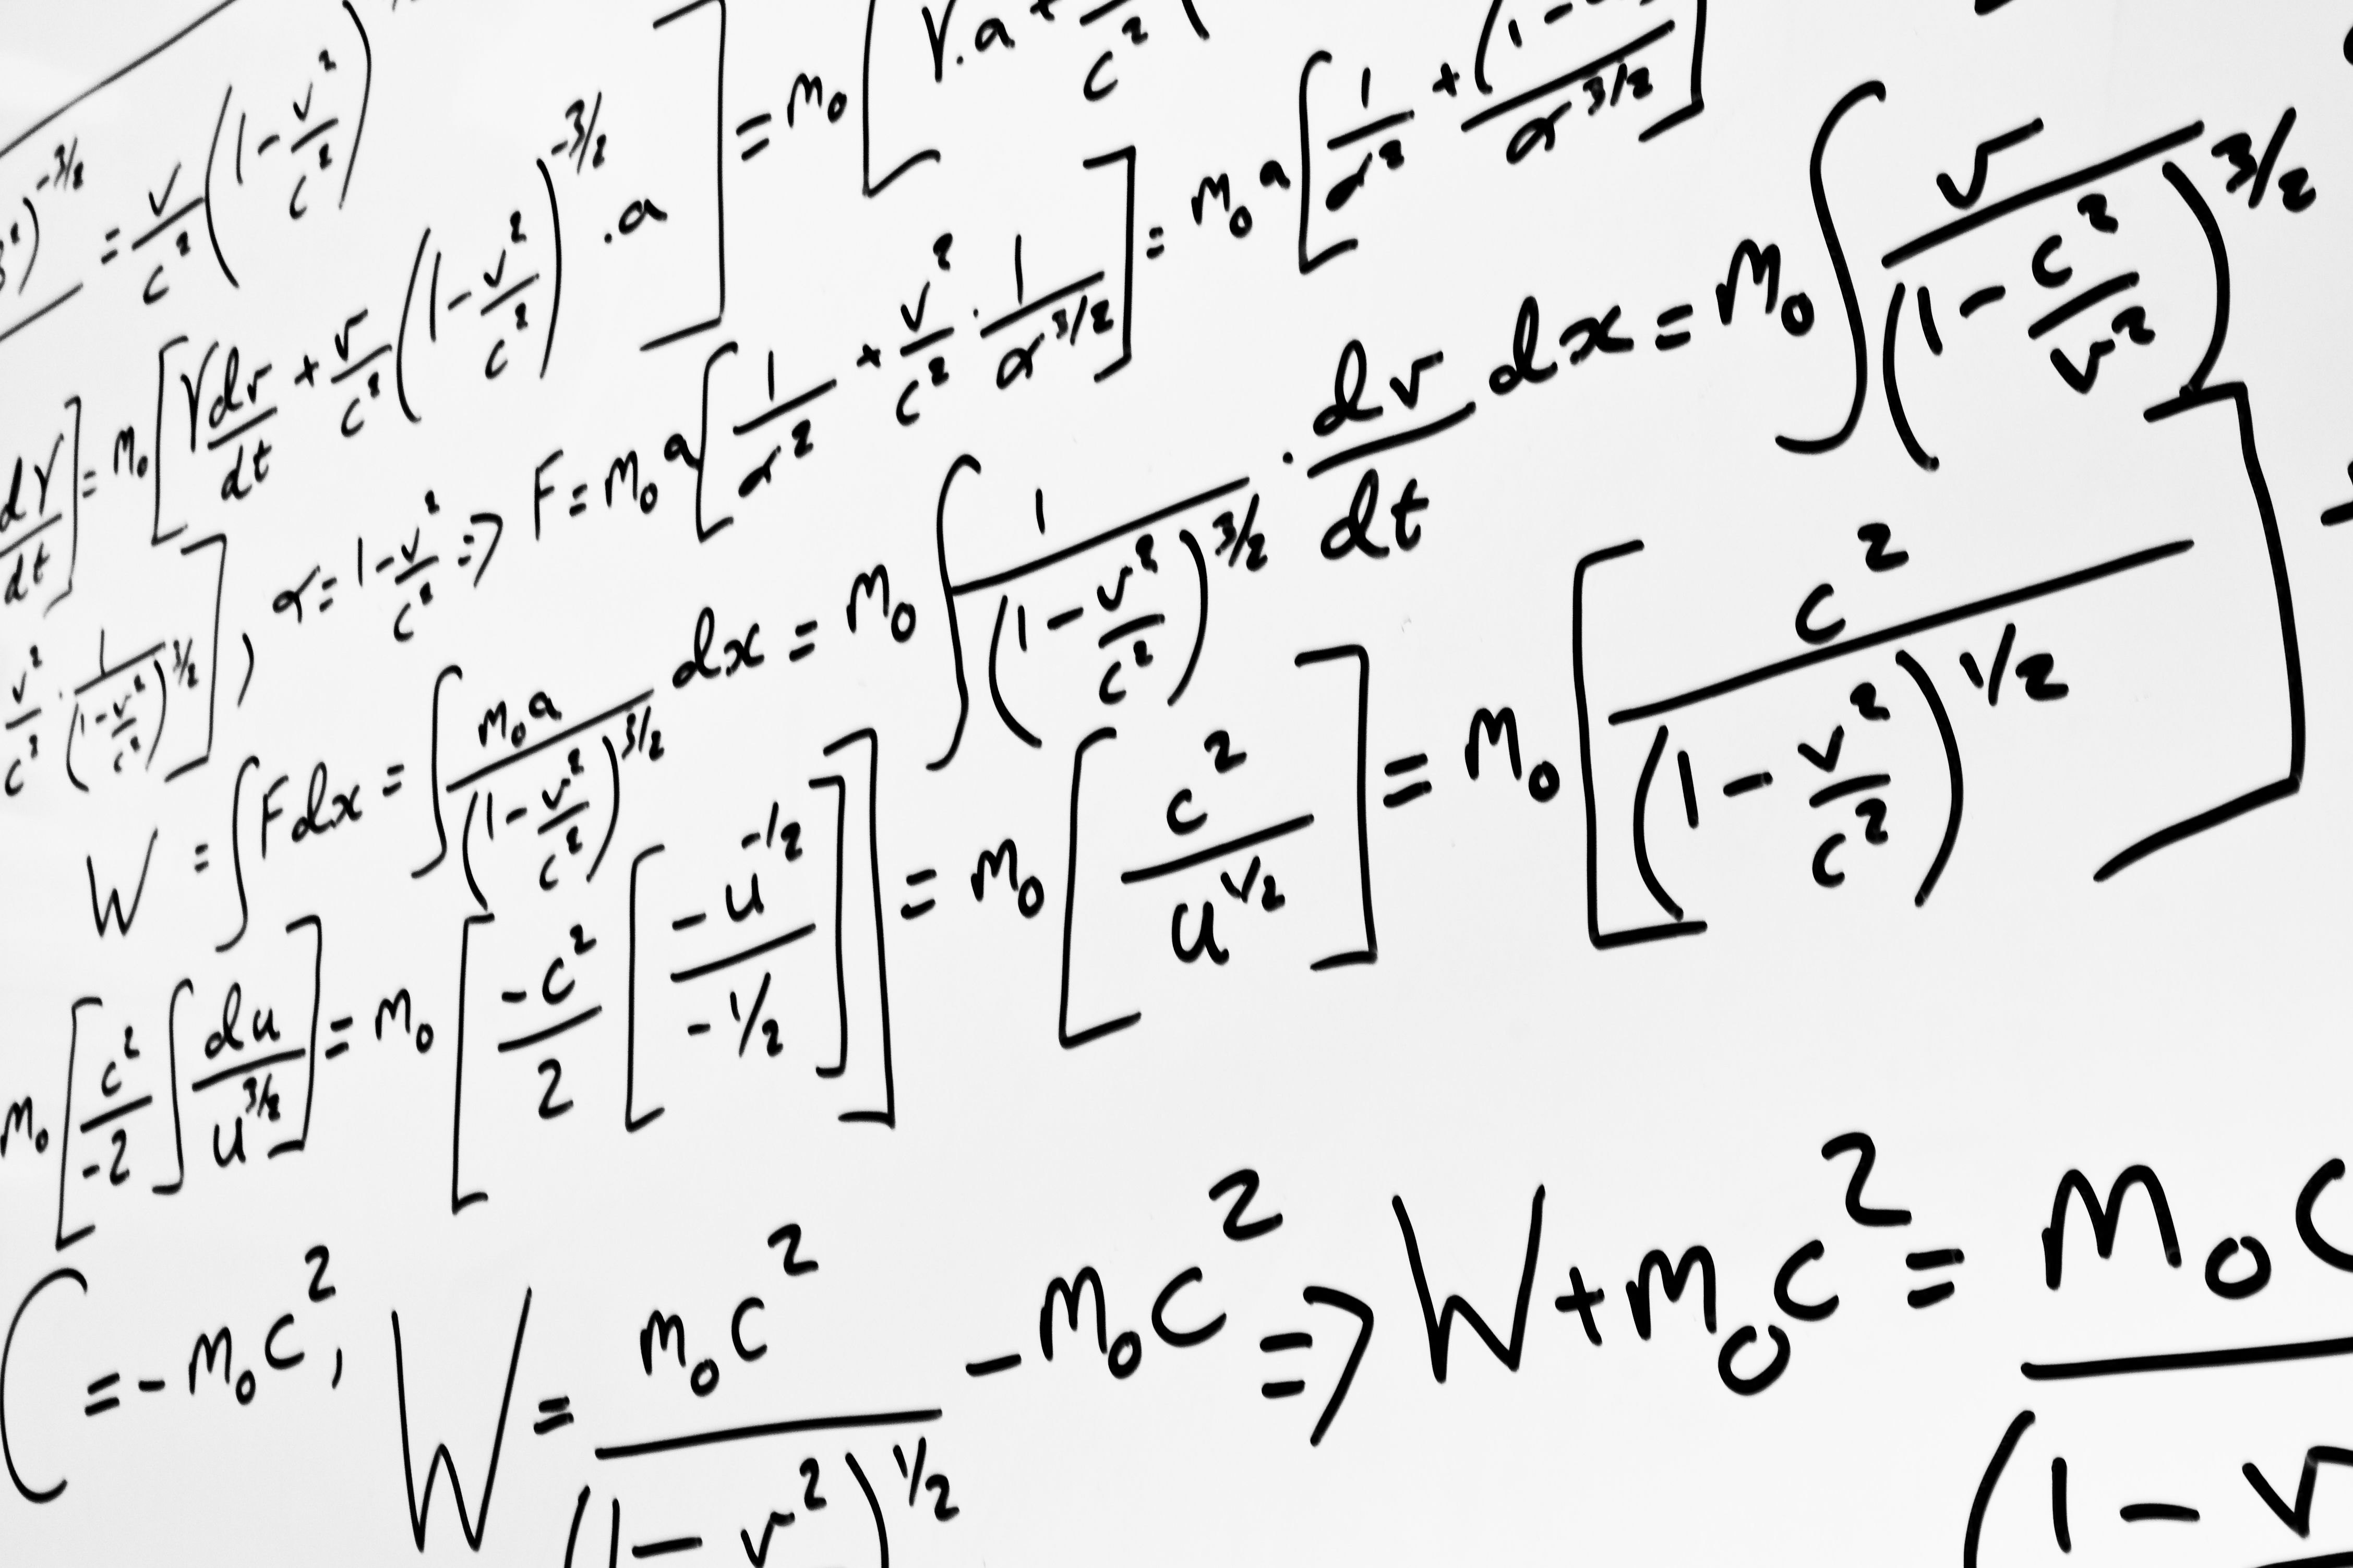 Professor Vicky Neale, Whitehead Lecturer at the Mathematical Institute, considers the beauty of maths in an article first published on The Conversation.